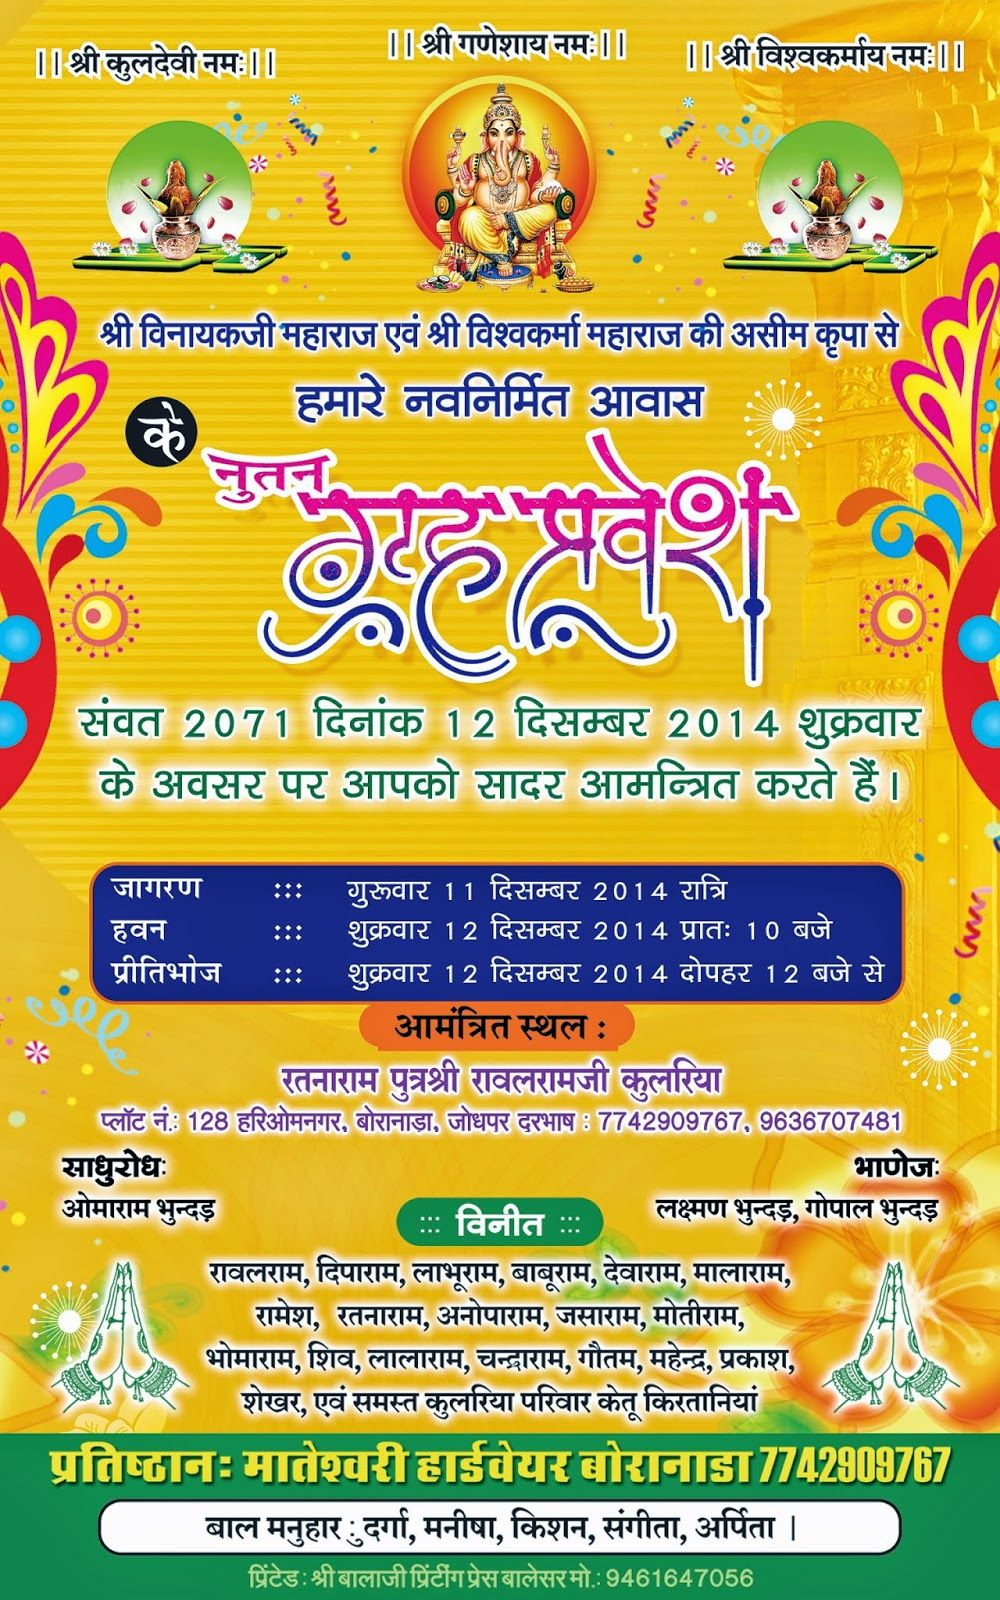 Griha pravesh invitation wordings in english card invitation ideas griha pravesh invitation wordings in english card invitation ideas simple modern griha pravesh invitation stopboris Images